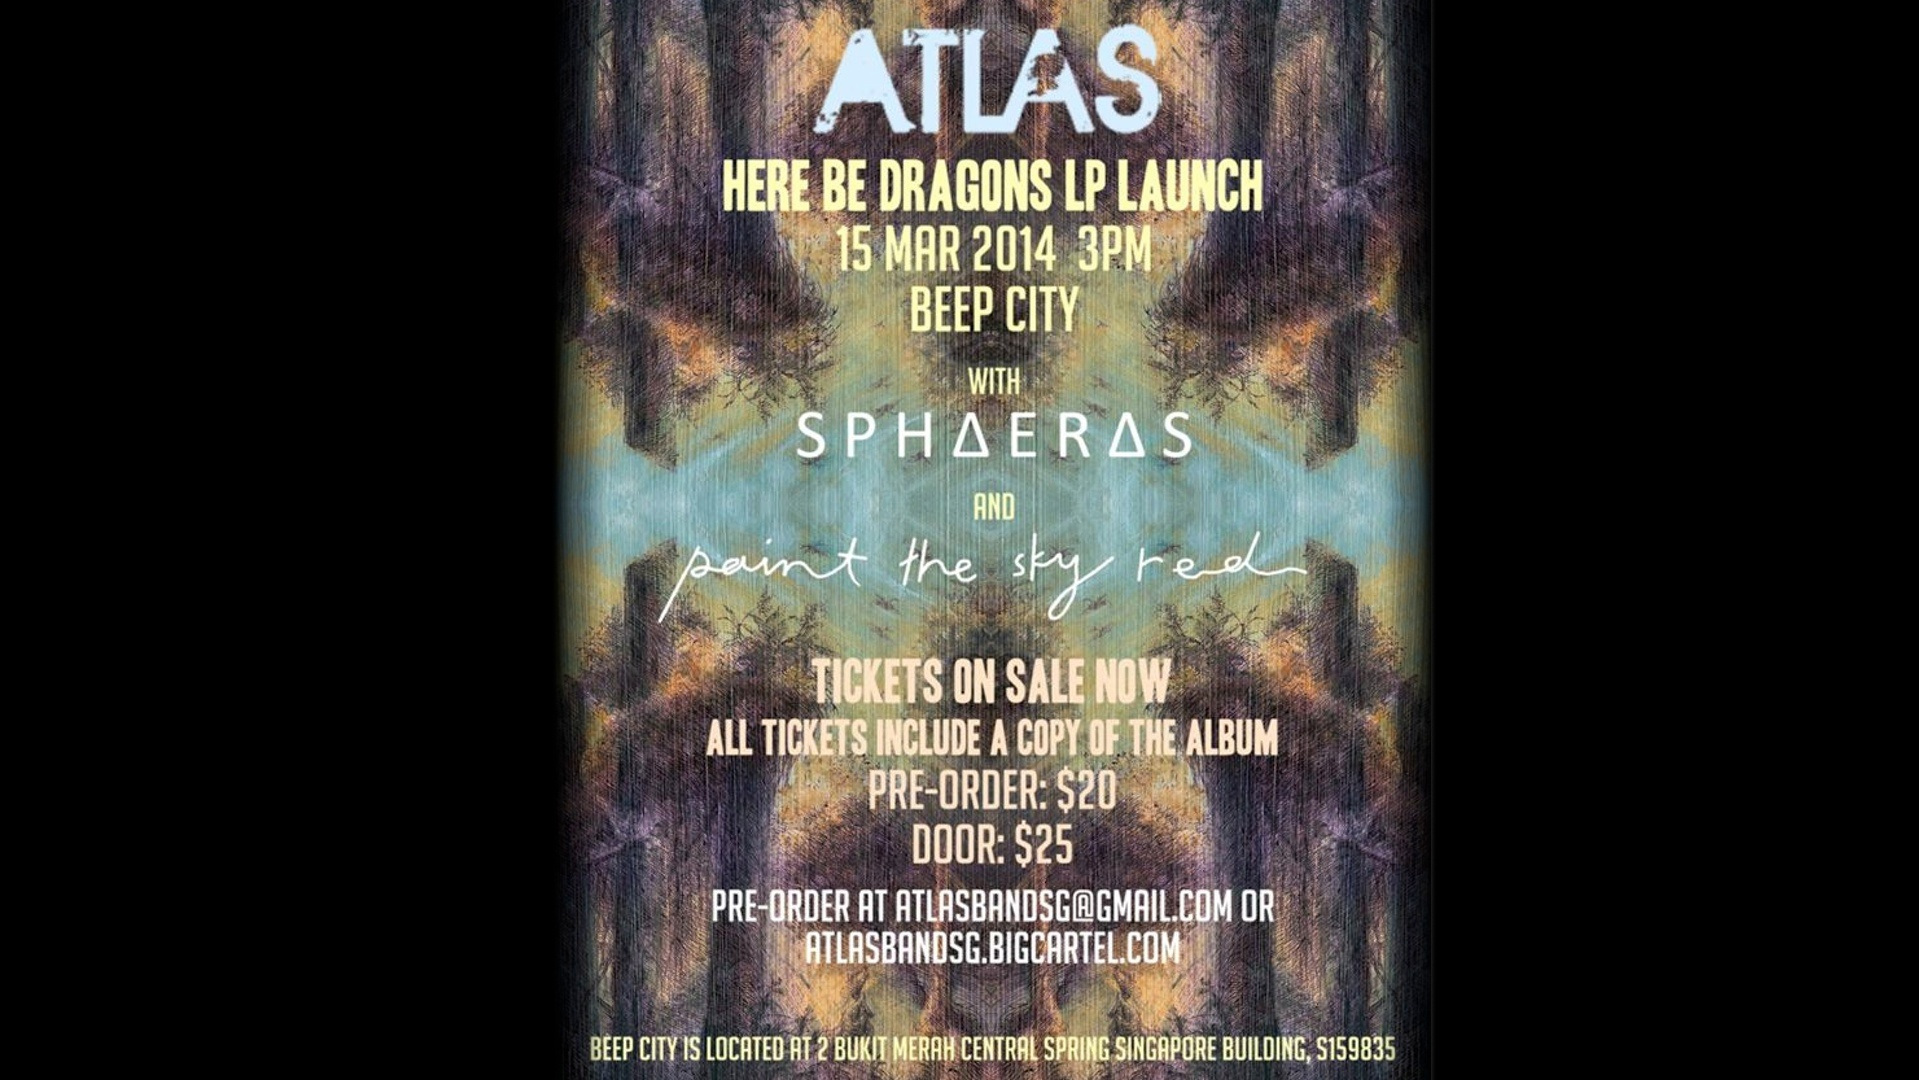 Atlas: Here Be Dragons LP Launch